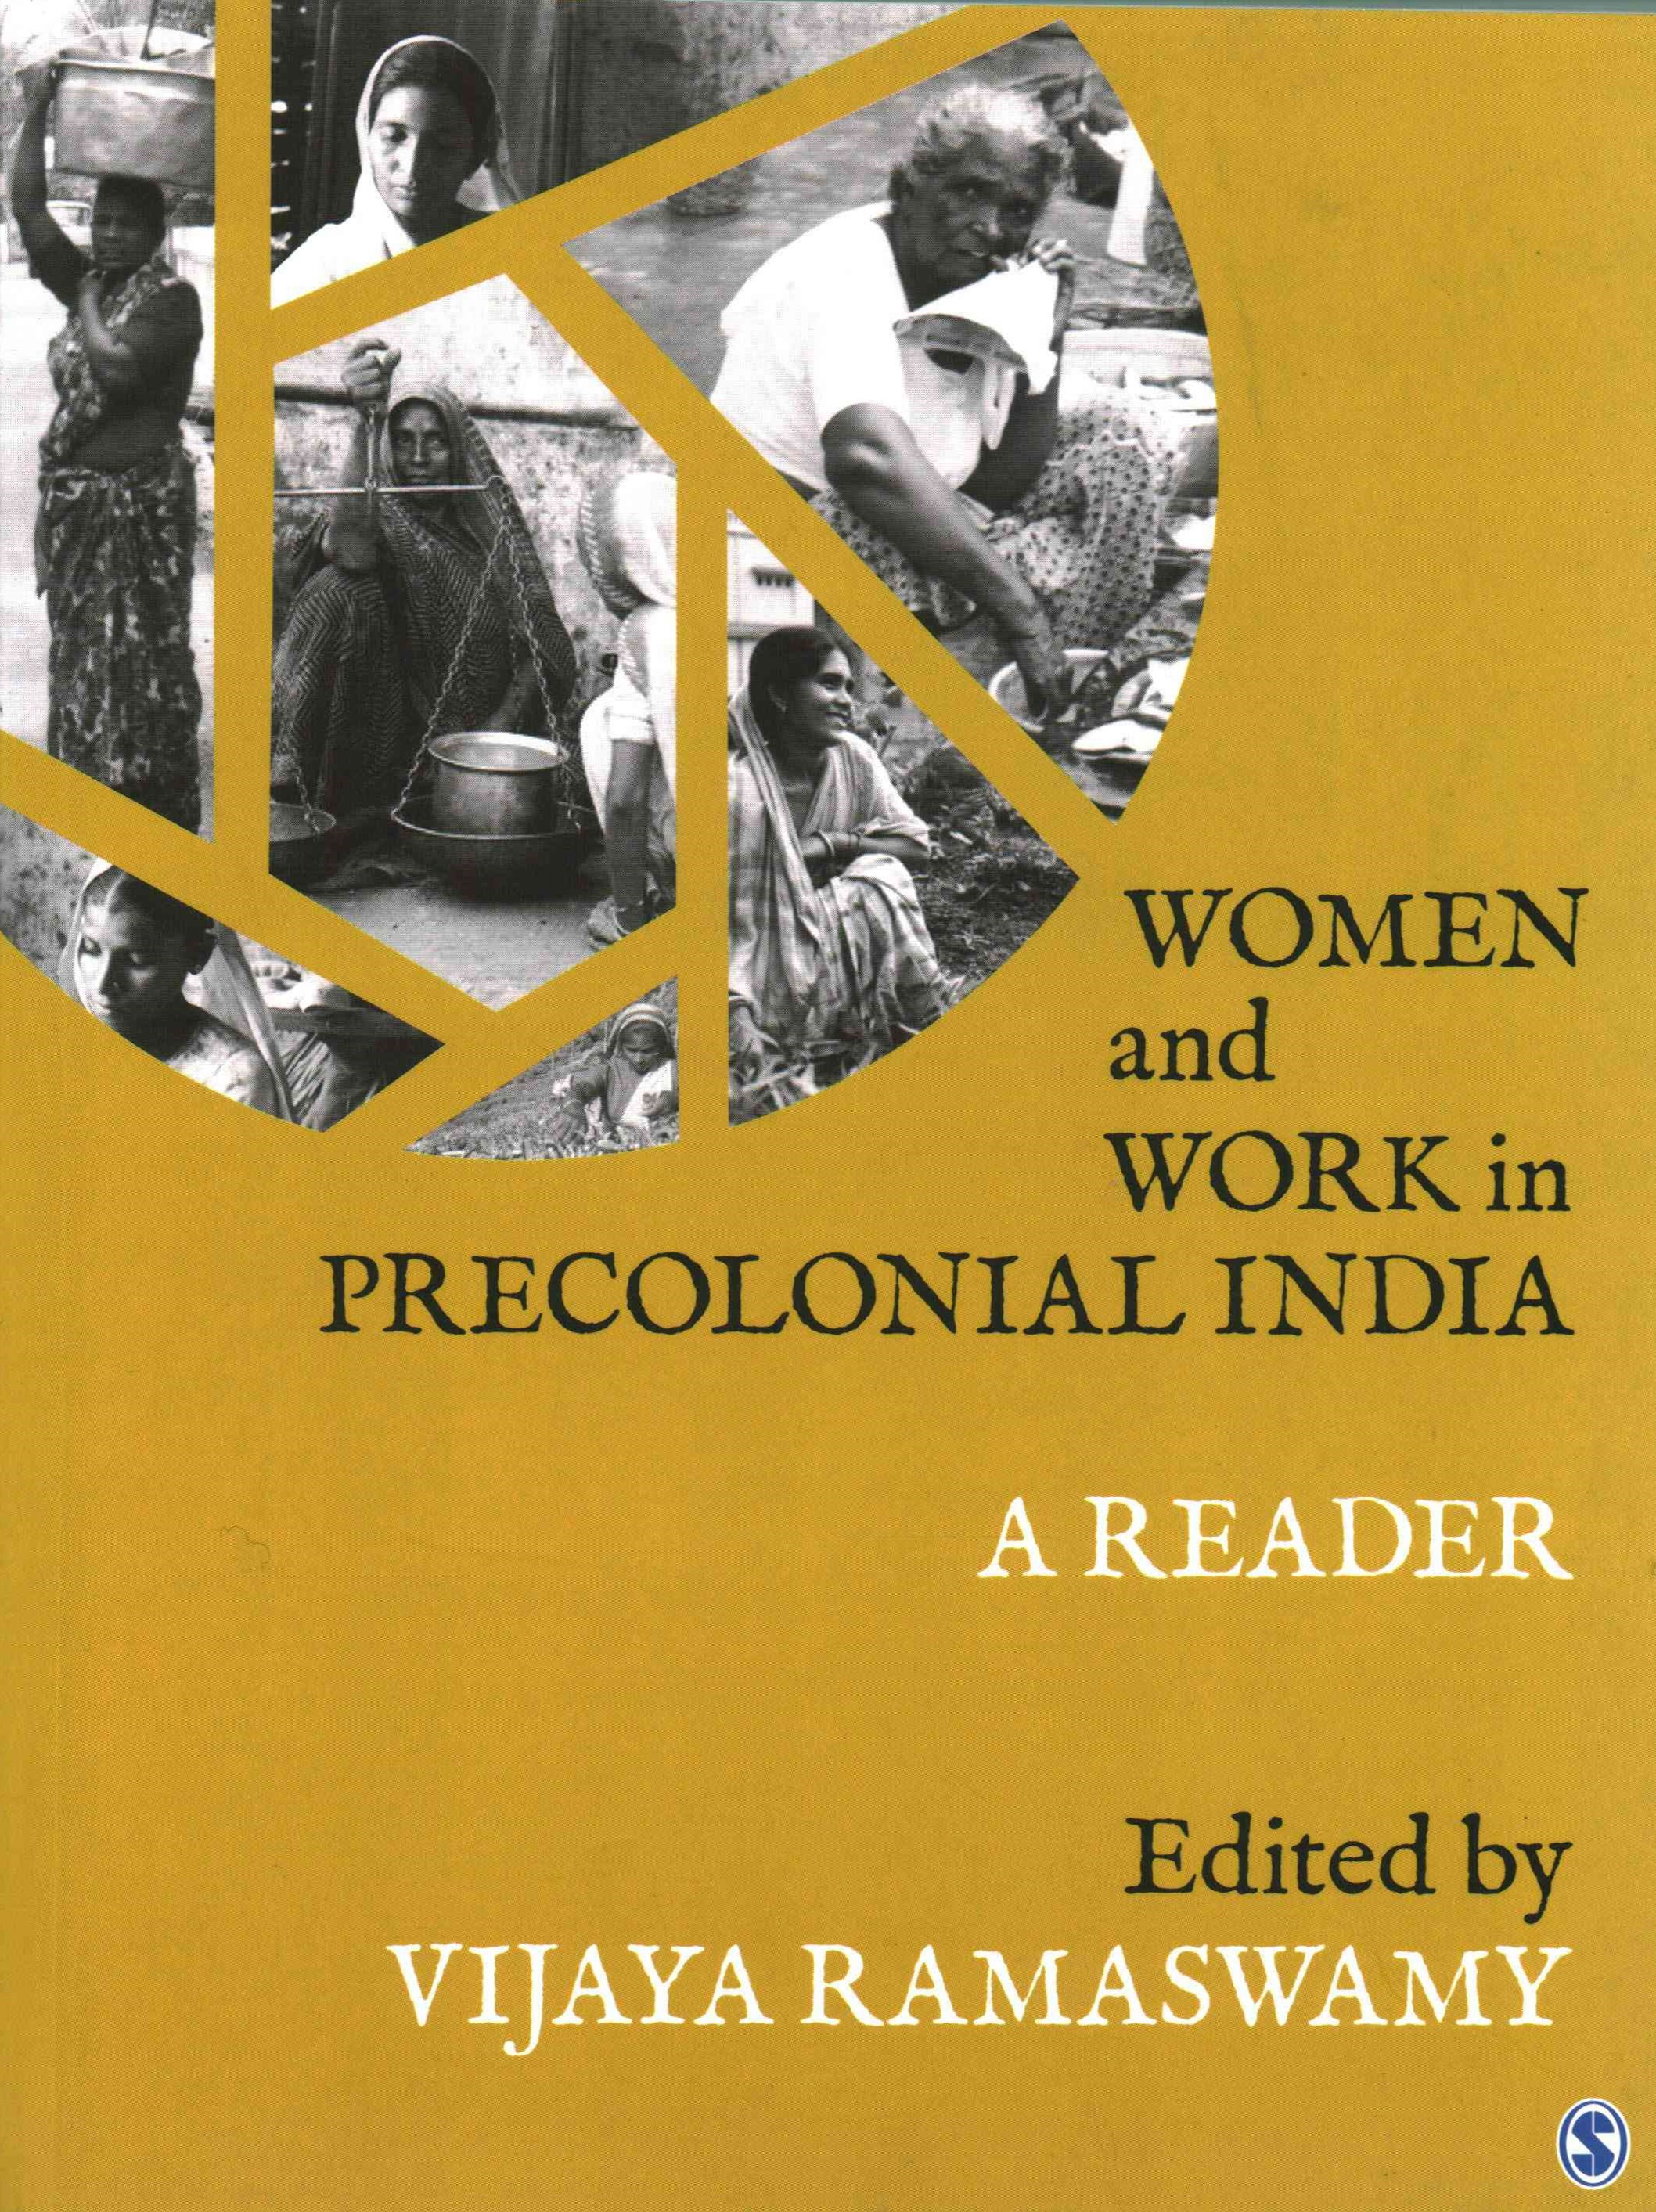 Women and Work in Precolonial India